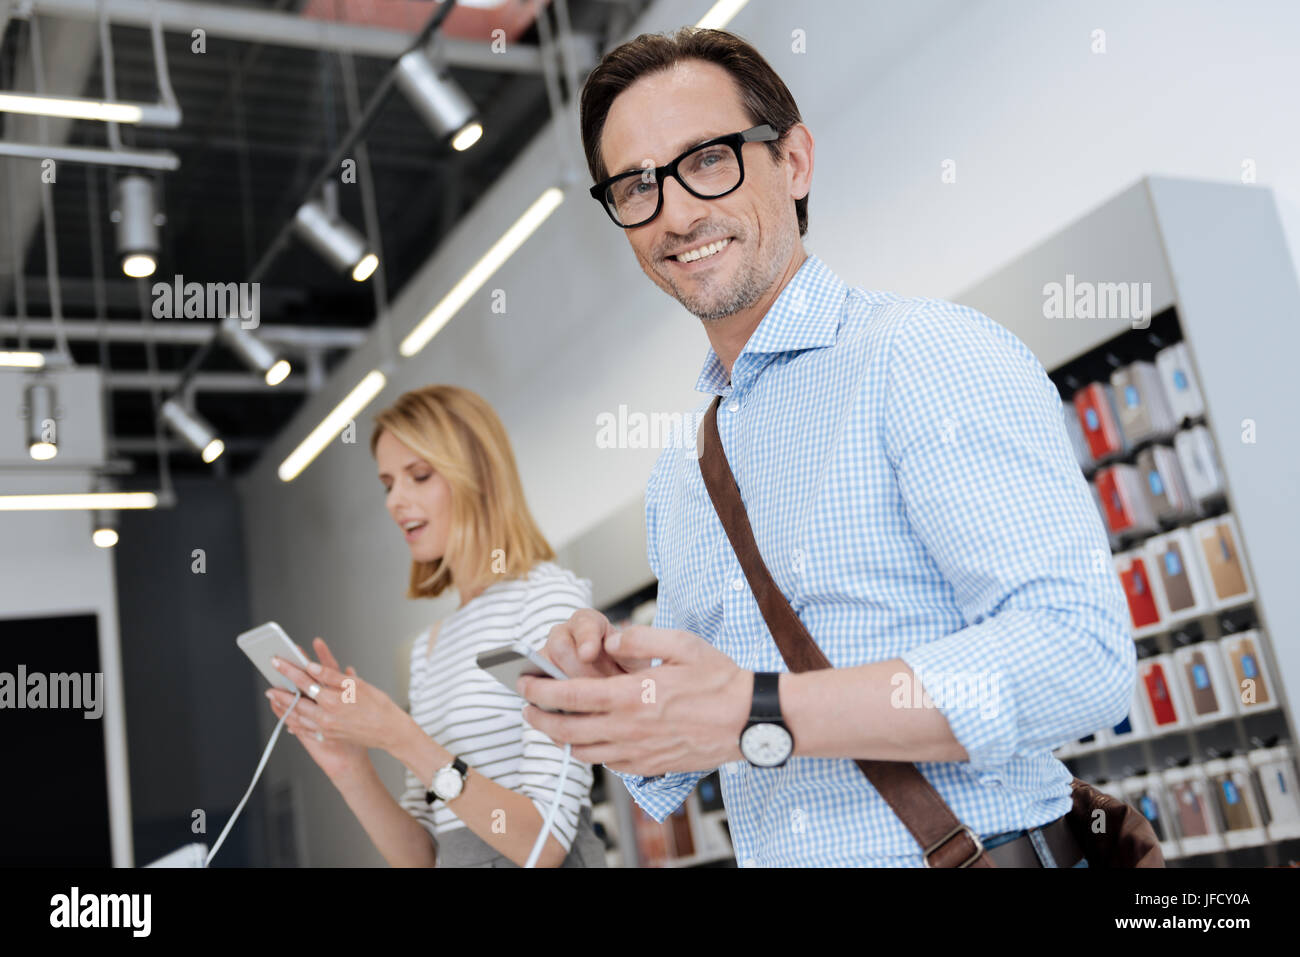 Cannot believe my eyes. Selective focus on a friendly man standing holding a phone and grinning widely while a female - Stock Image